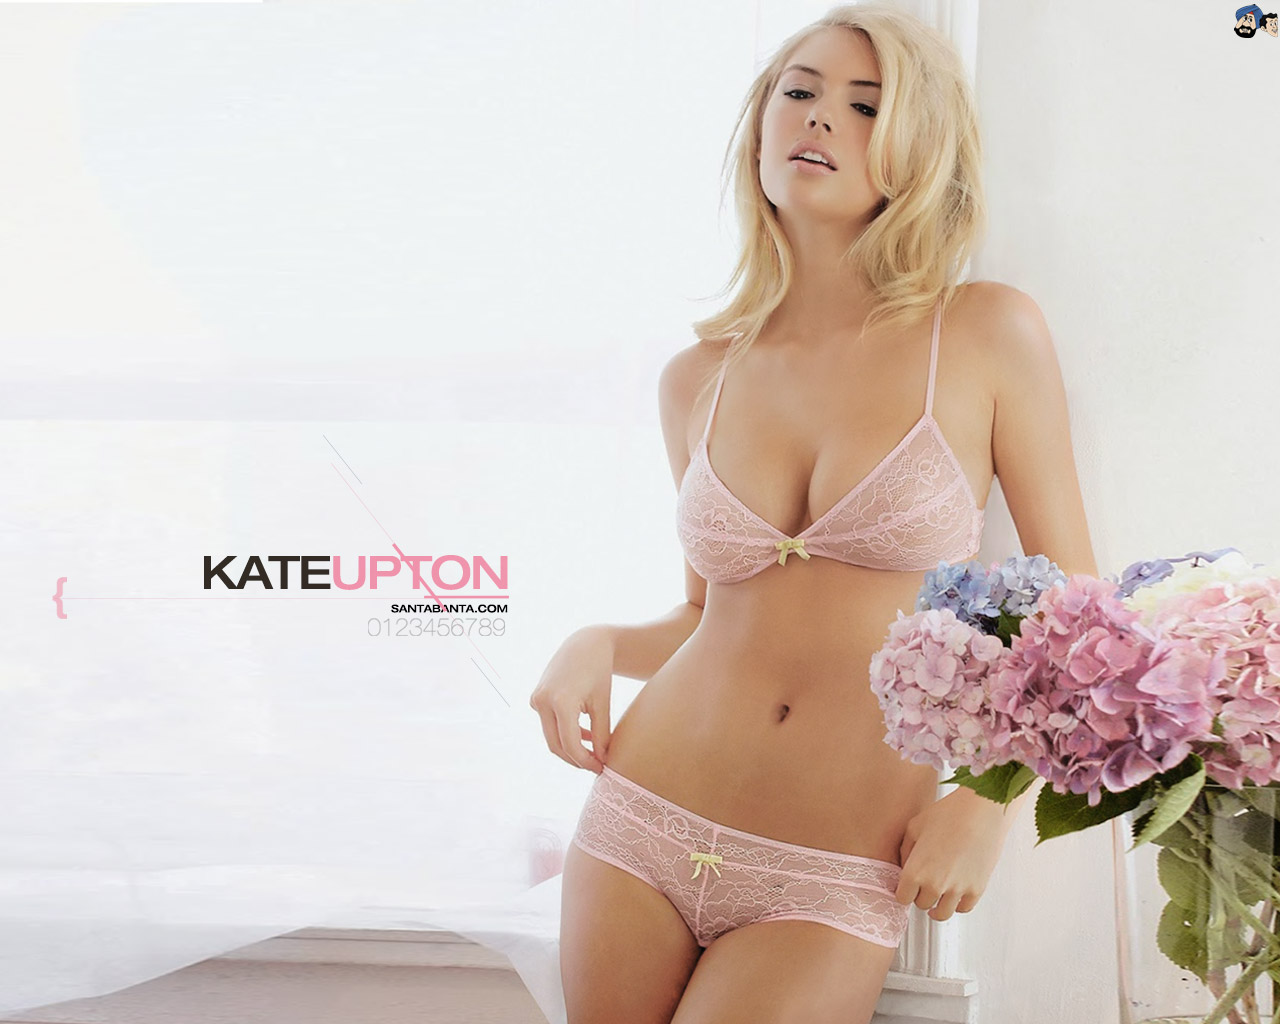 Cute Korean Wallpapers Desktop Kate Upton Sexy Wallpapers Most Beautiful Places In The